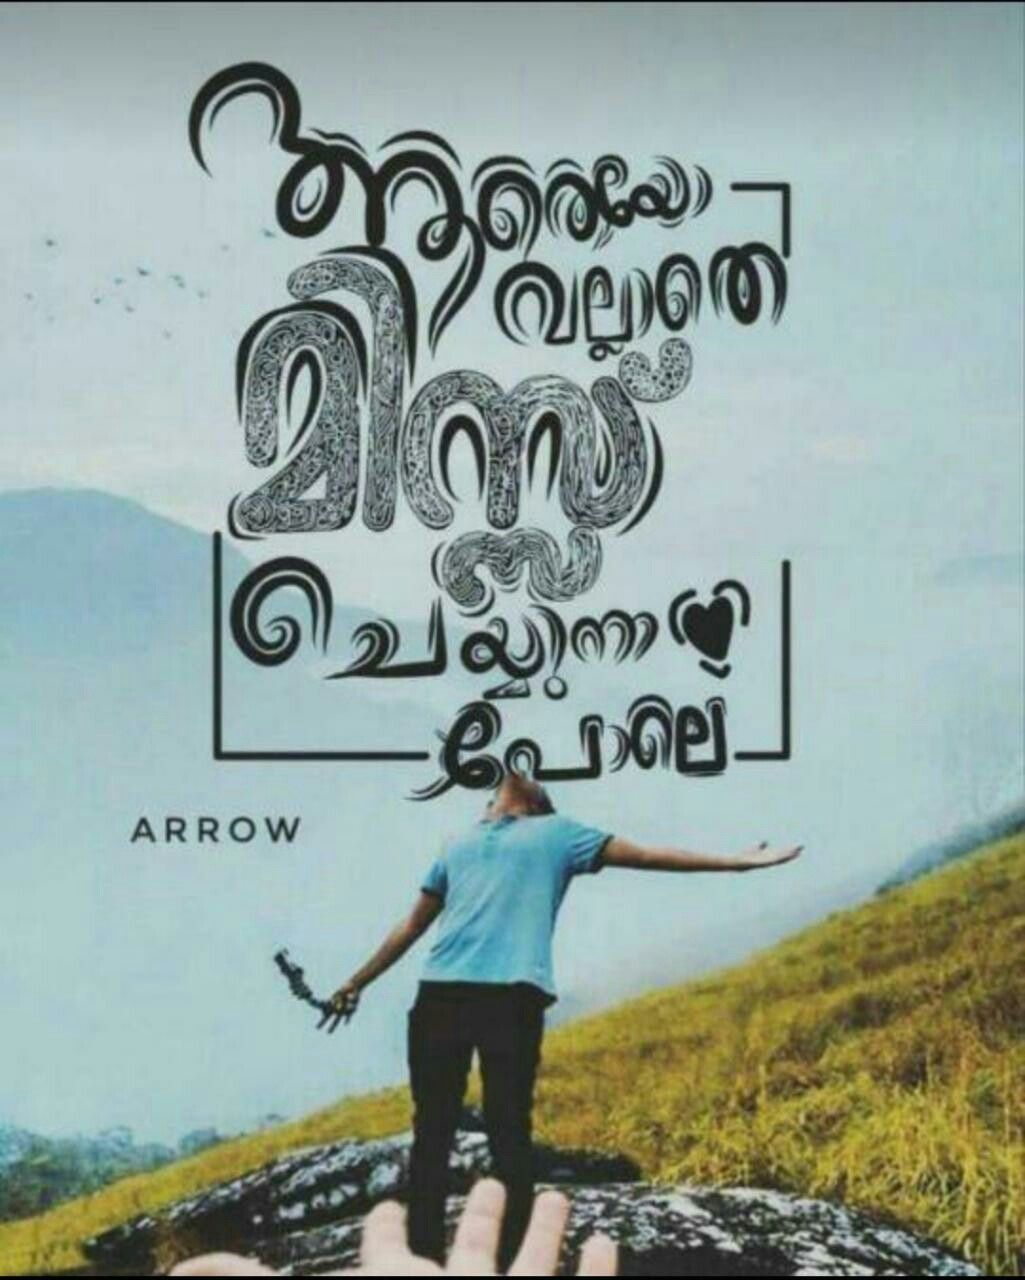 Pin By Mohammed Mirzan On Malayalam Typography Malayalam Quotes